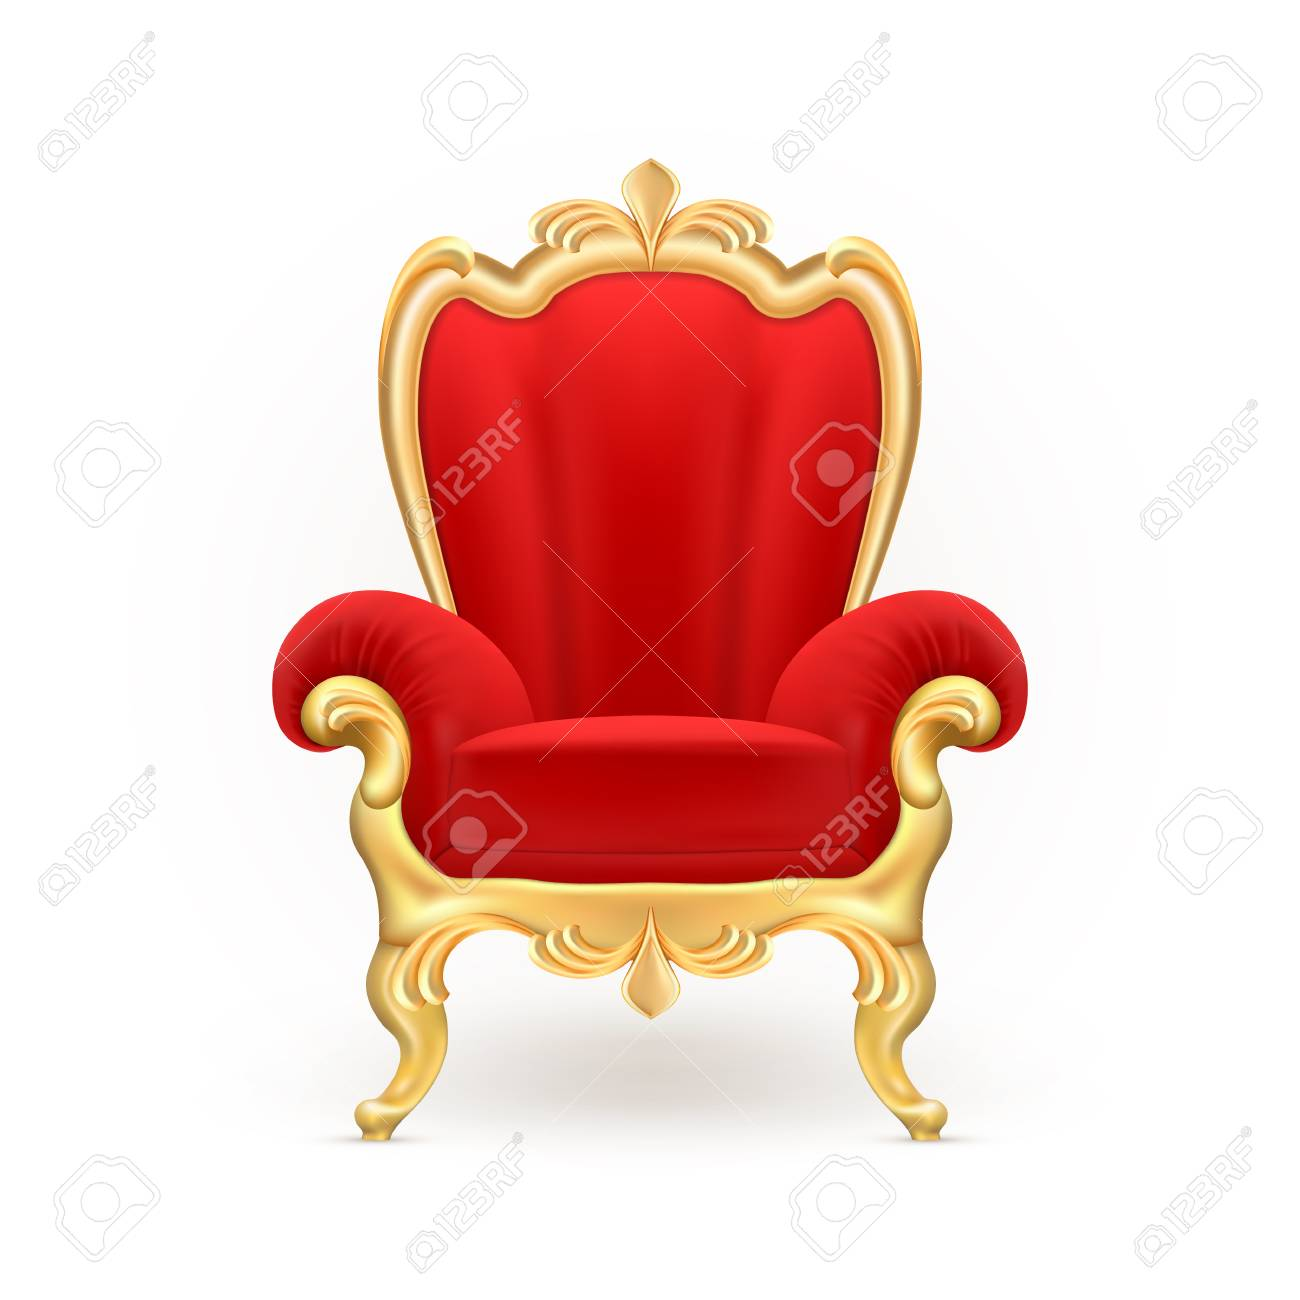 Vector - Vector realistic royal throne, luxurious red chair with carved  golden legs isolated on background. - Vector Realistic Royal Throne, Luxurious Red Chair With Carved